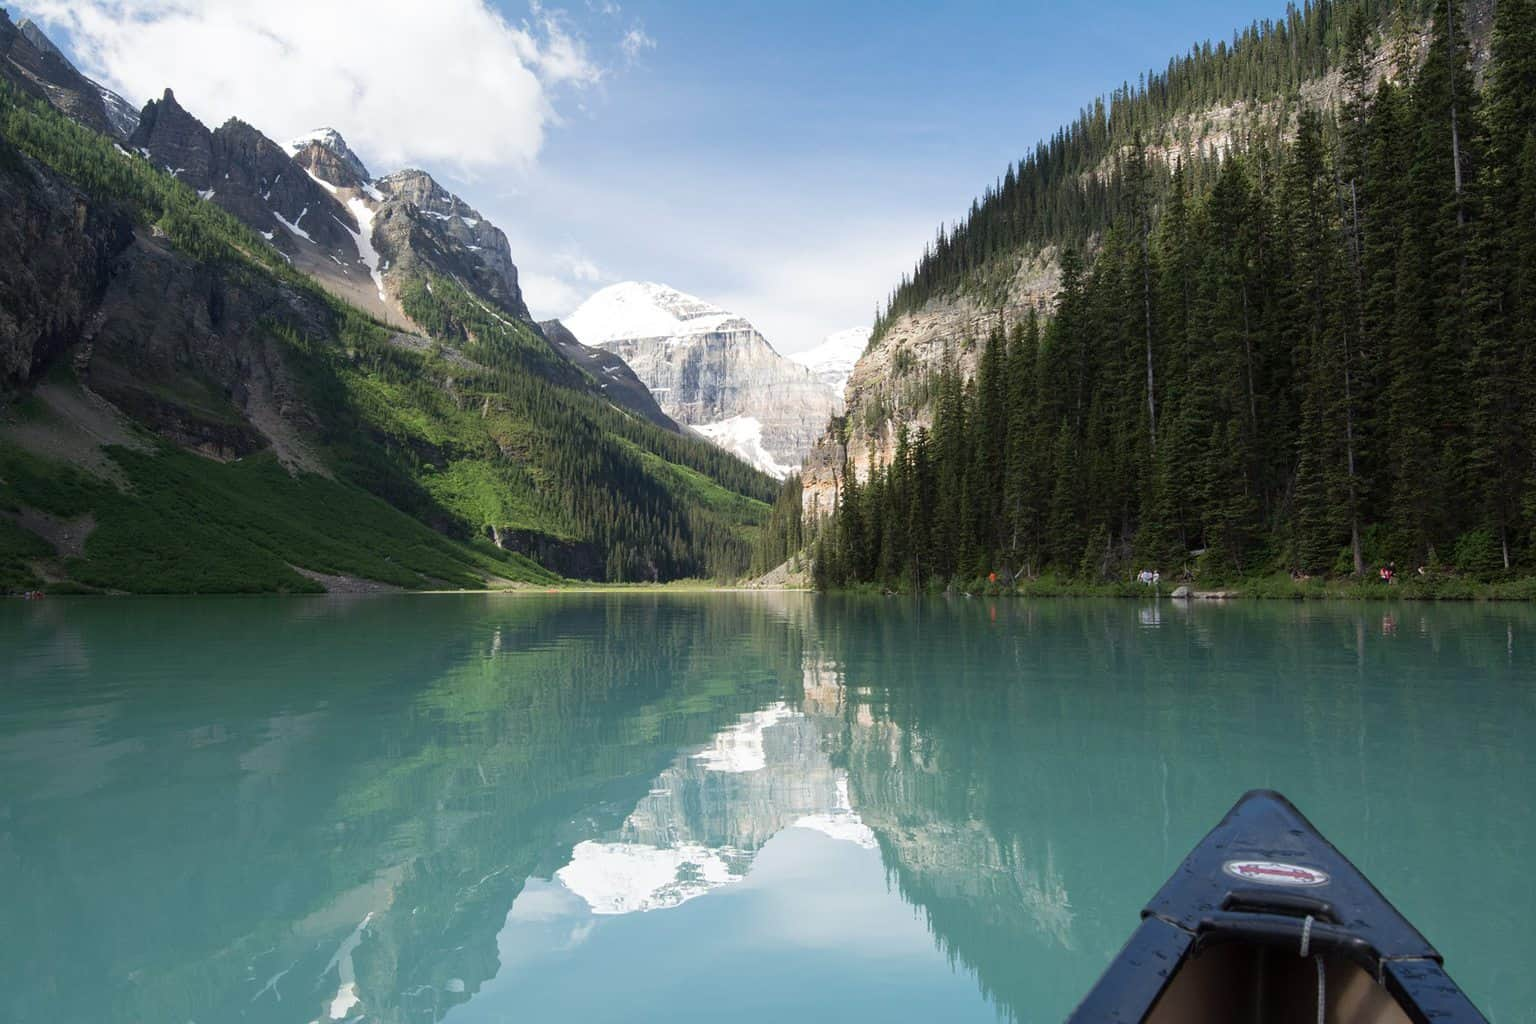 Canoeing on Lake Louise in the Canadian Rockies